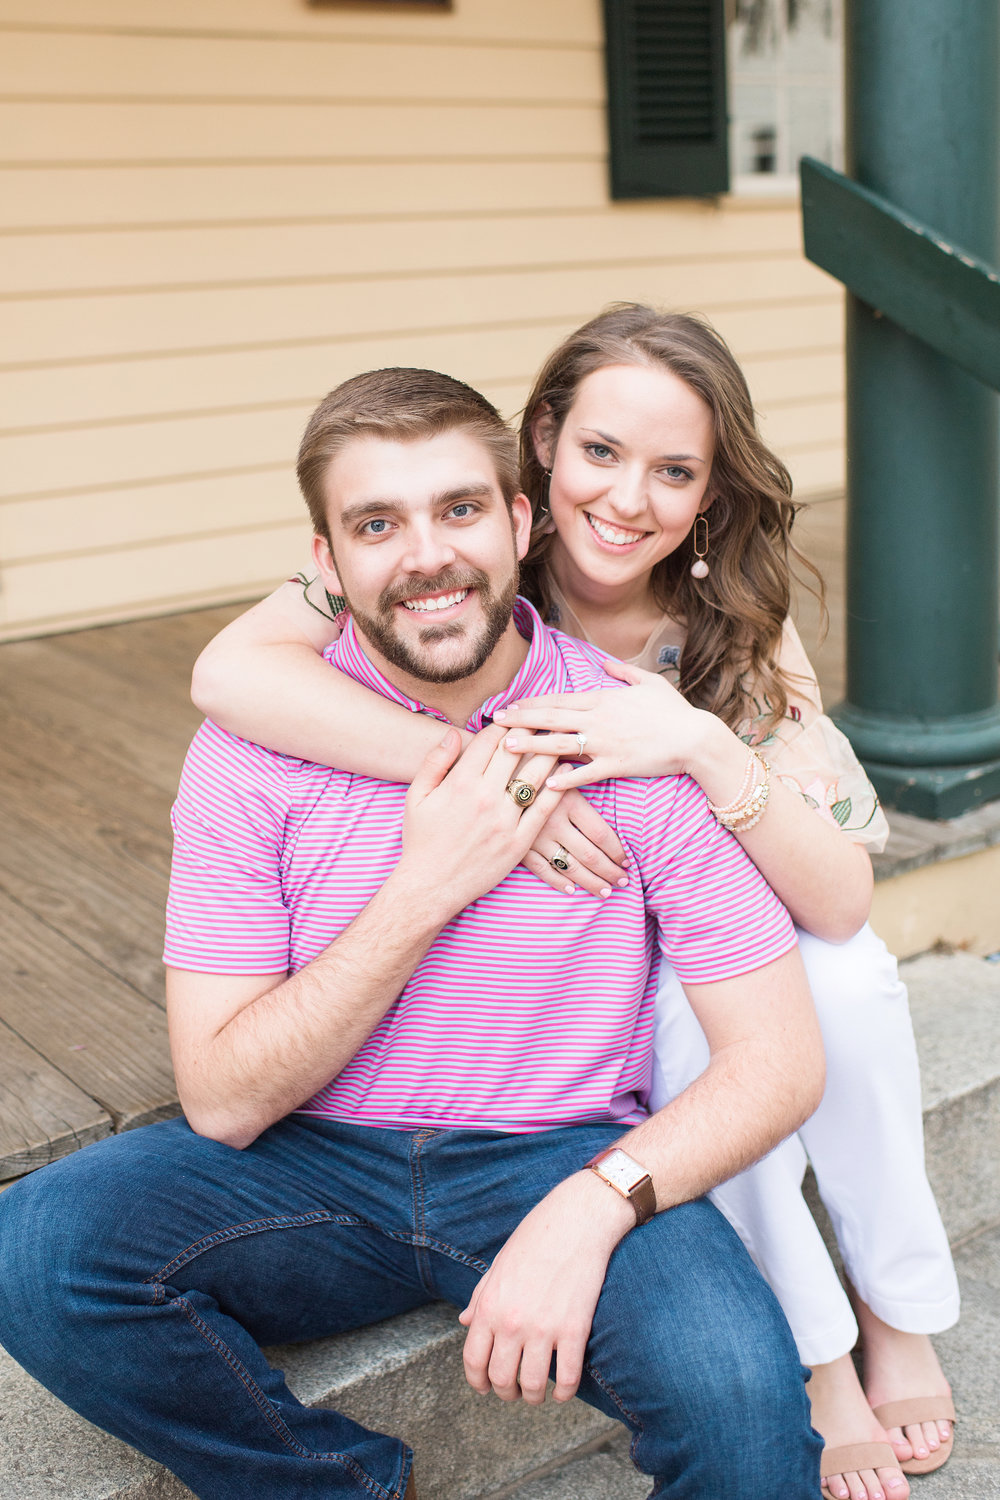 Anna McAlister & Tyler Leaphart - Wedding on March 30, 2019